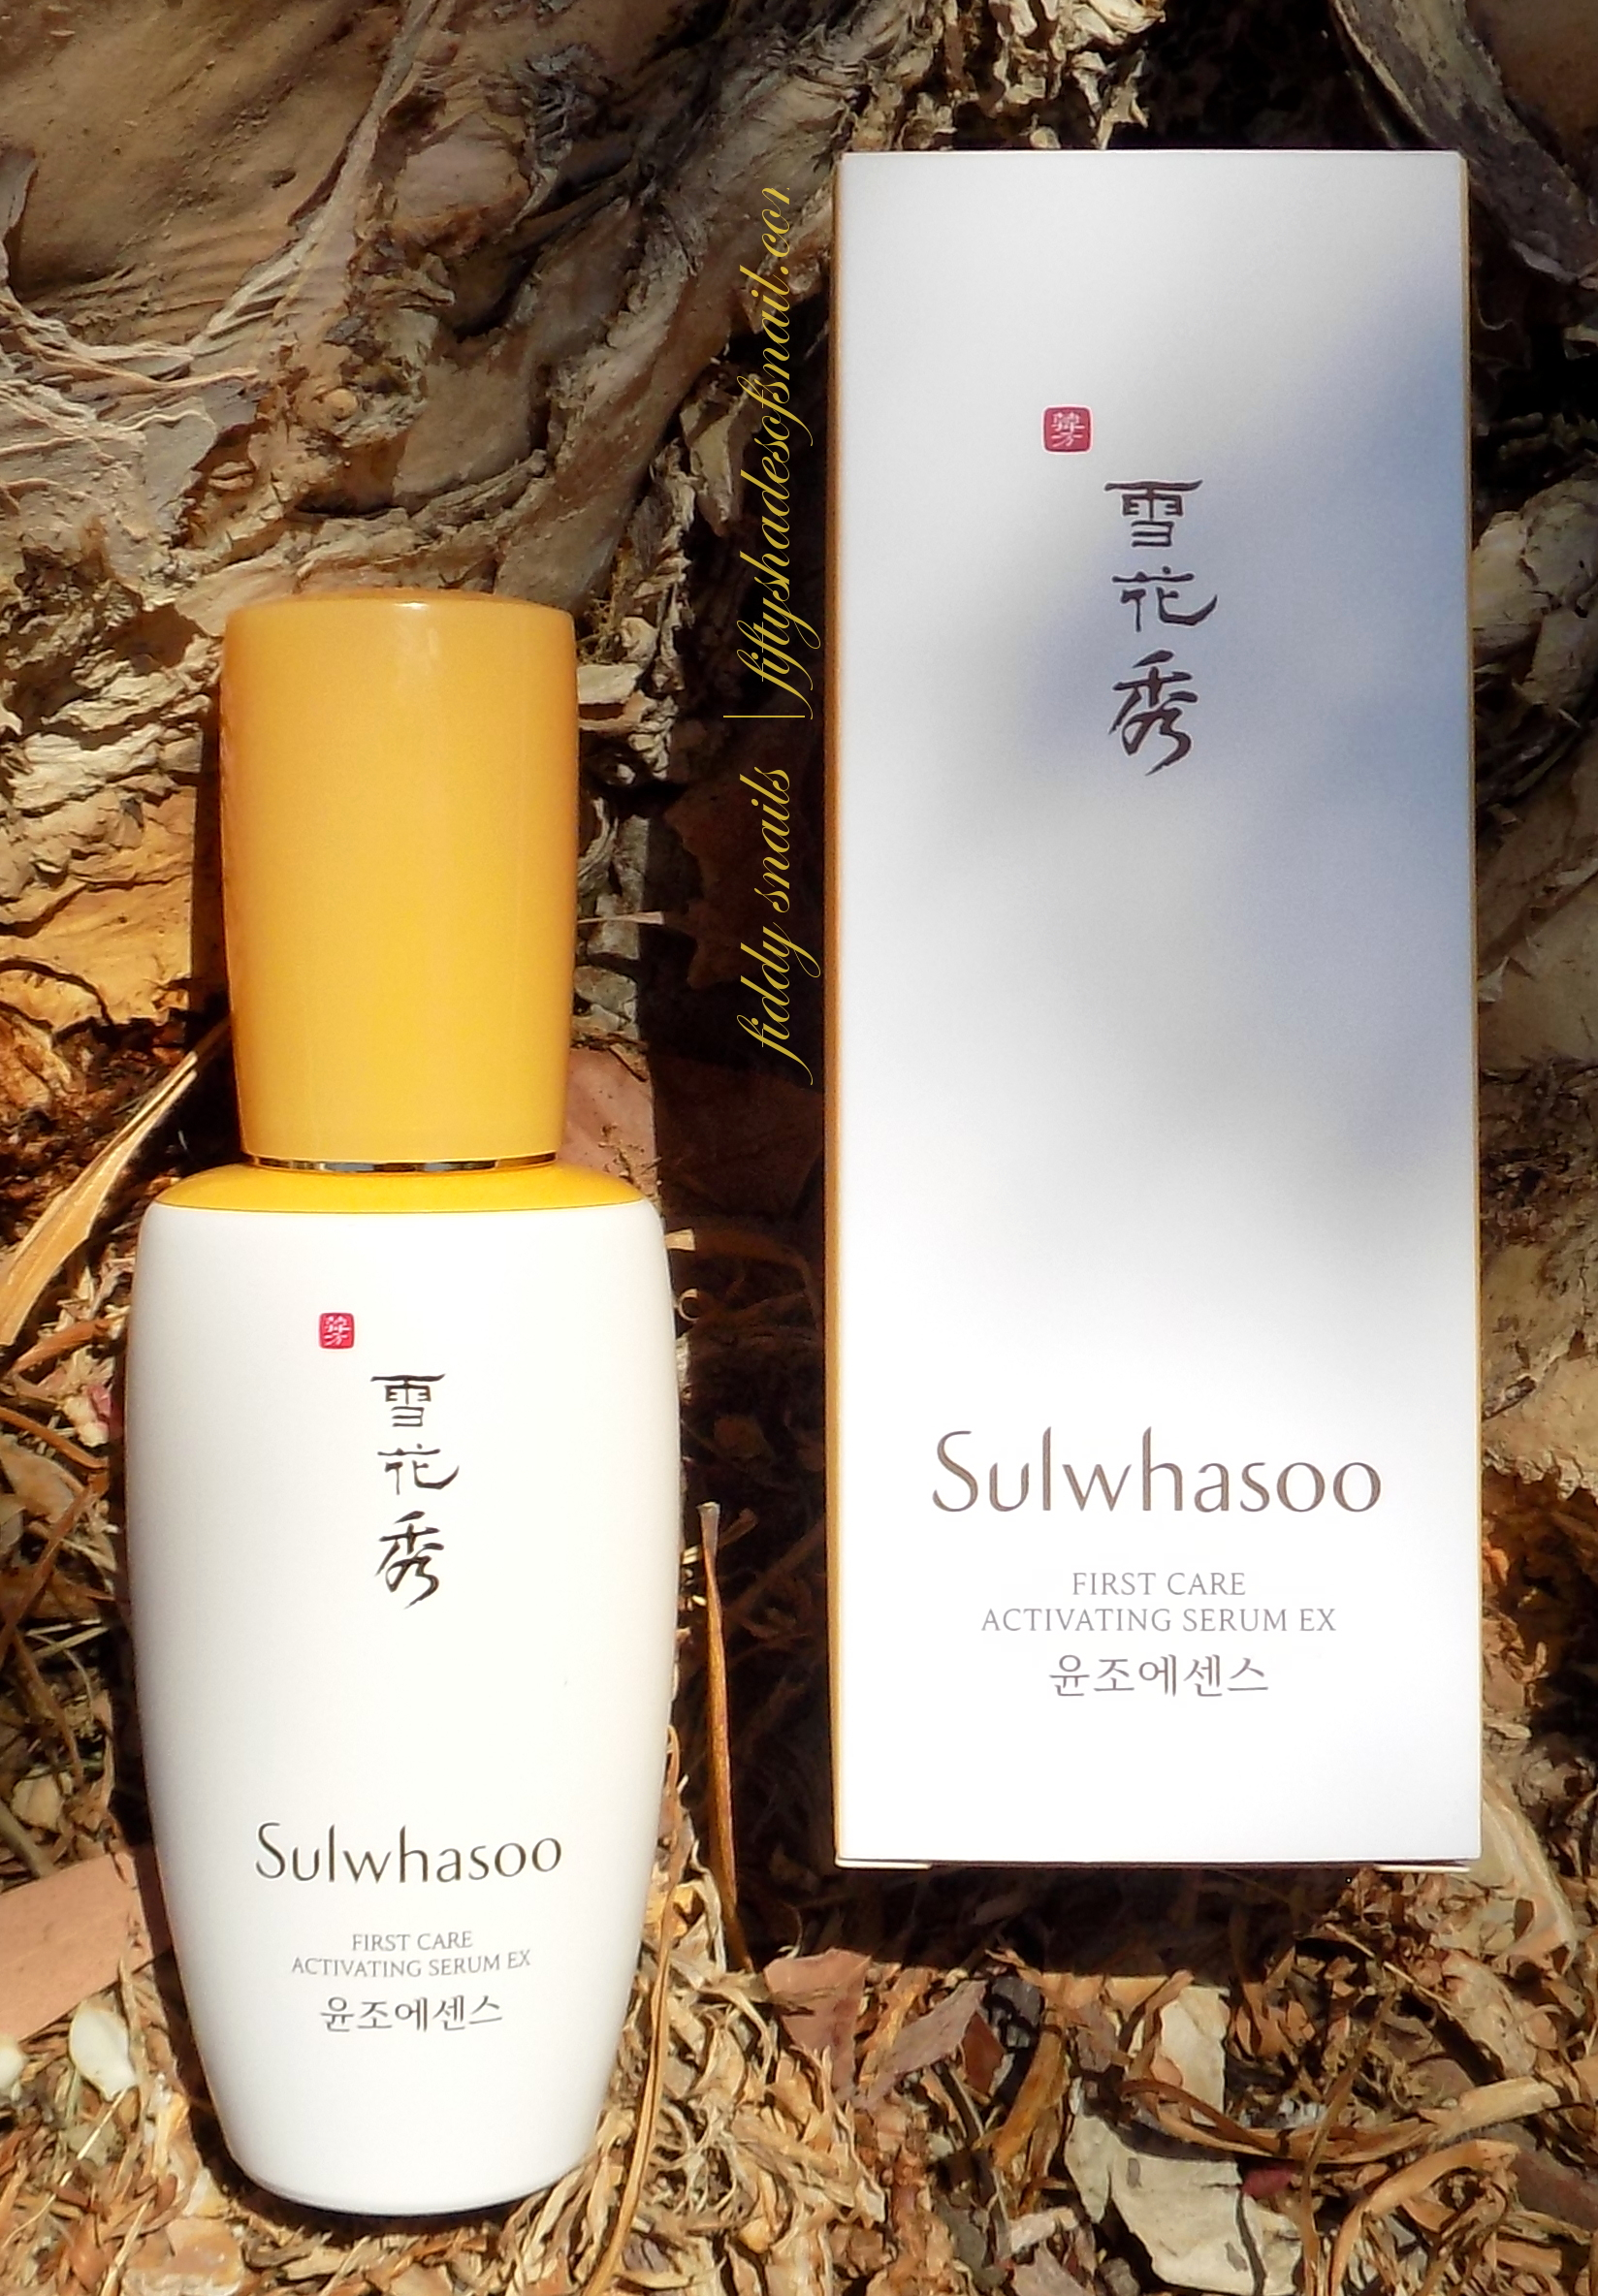 Updated Review Sulwhasoo First Care Activating Serum Ex Fifty Time Treasure Renovating Cream 8ml